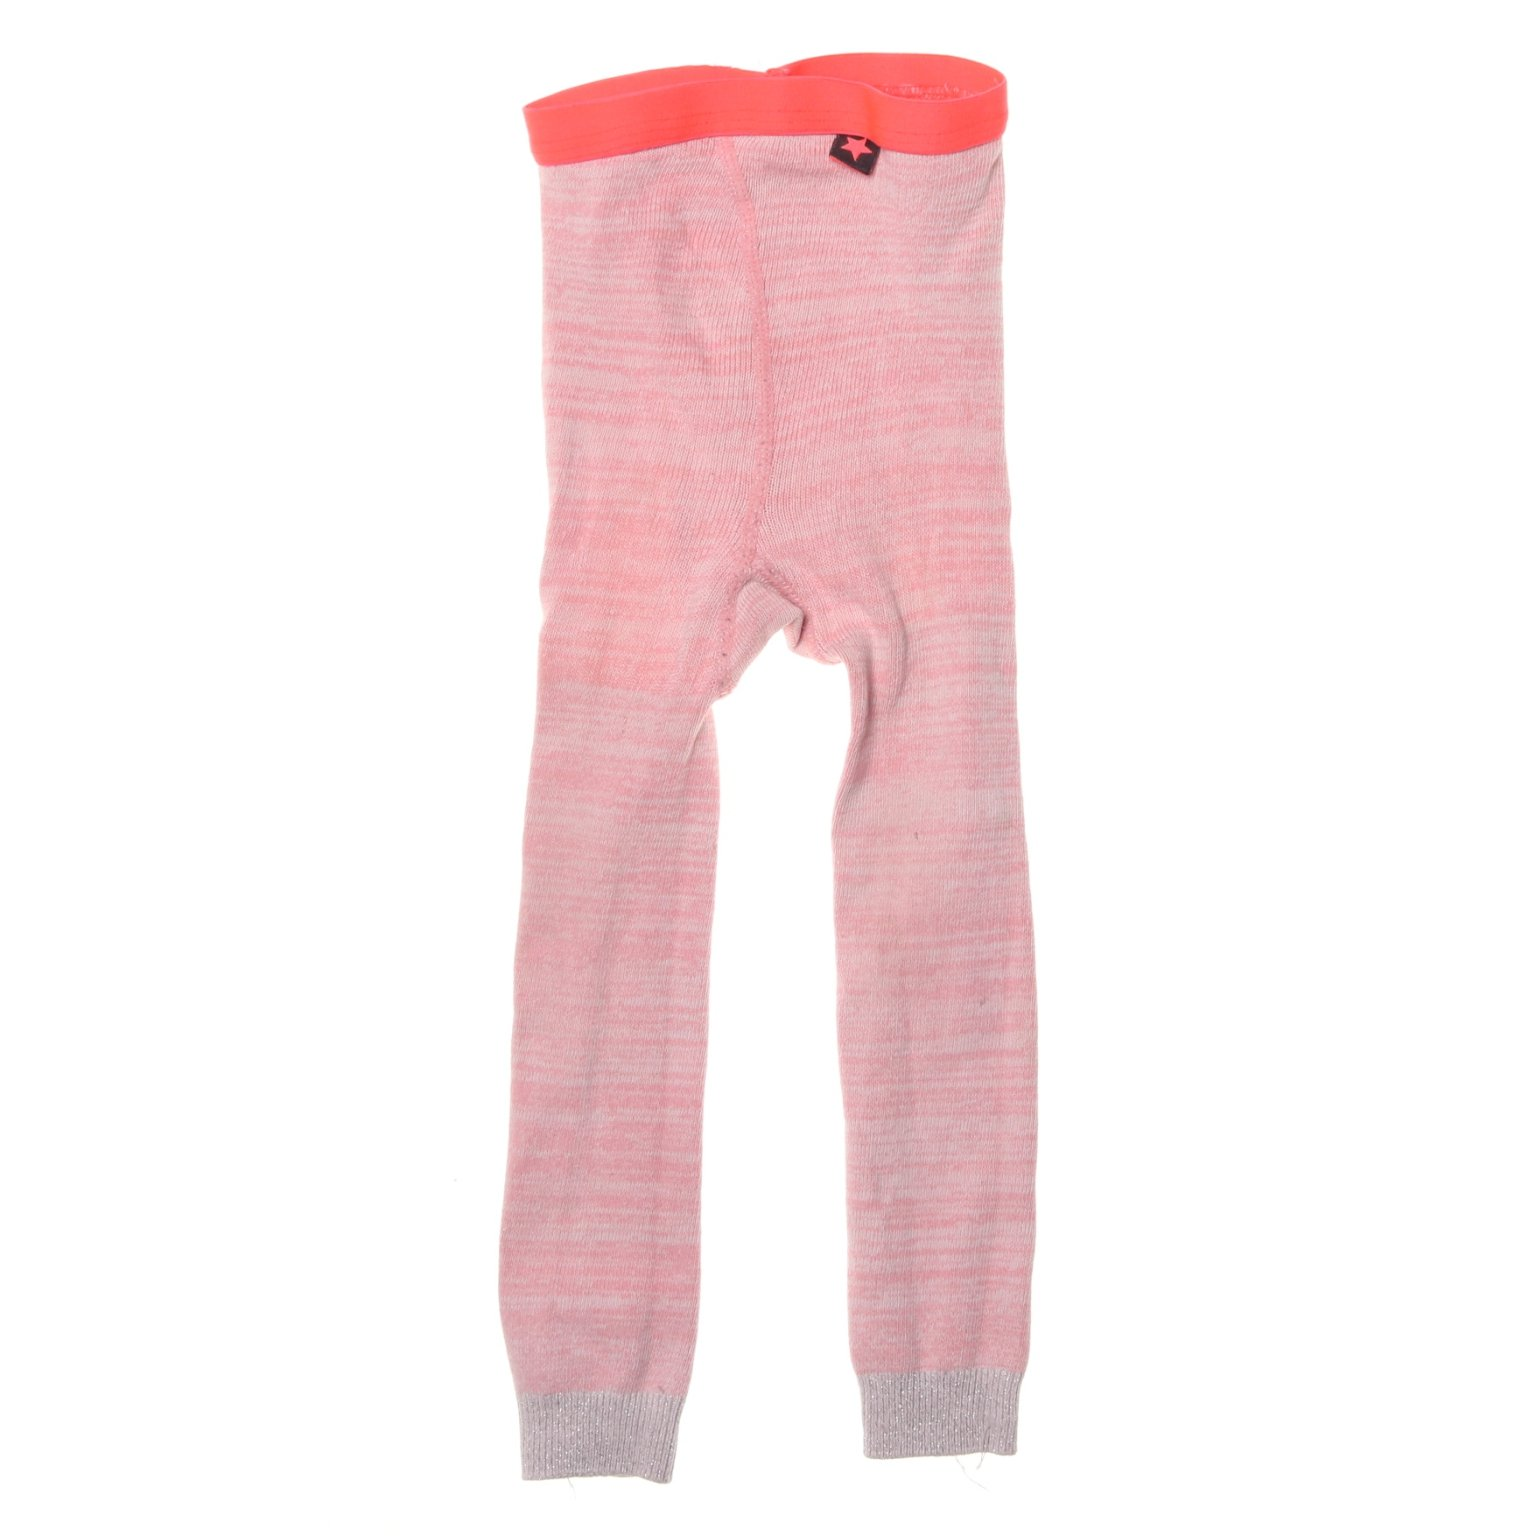 Molo, Leggings, Strl: 92/98, Rosa